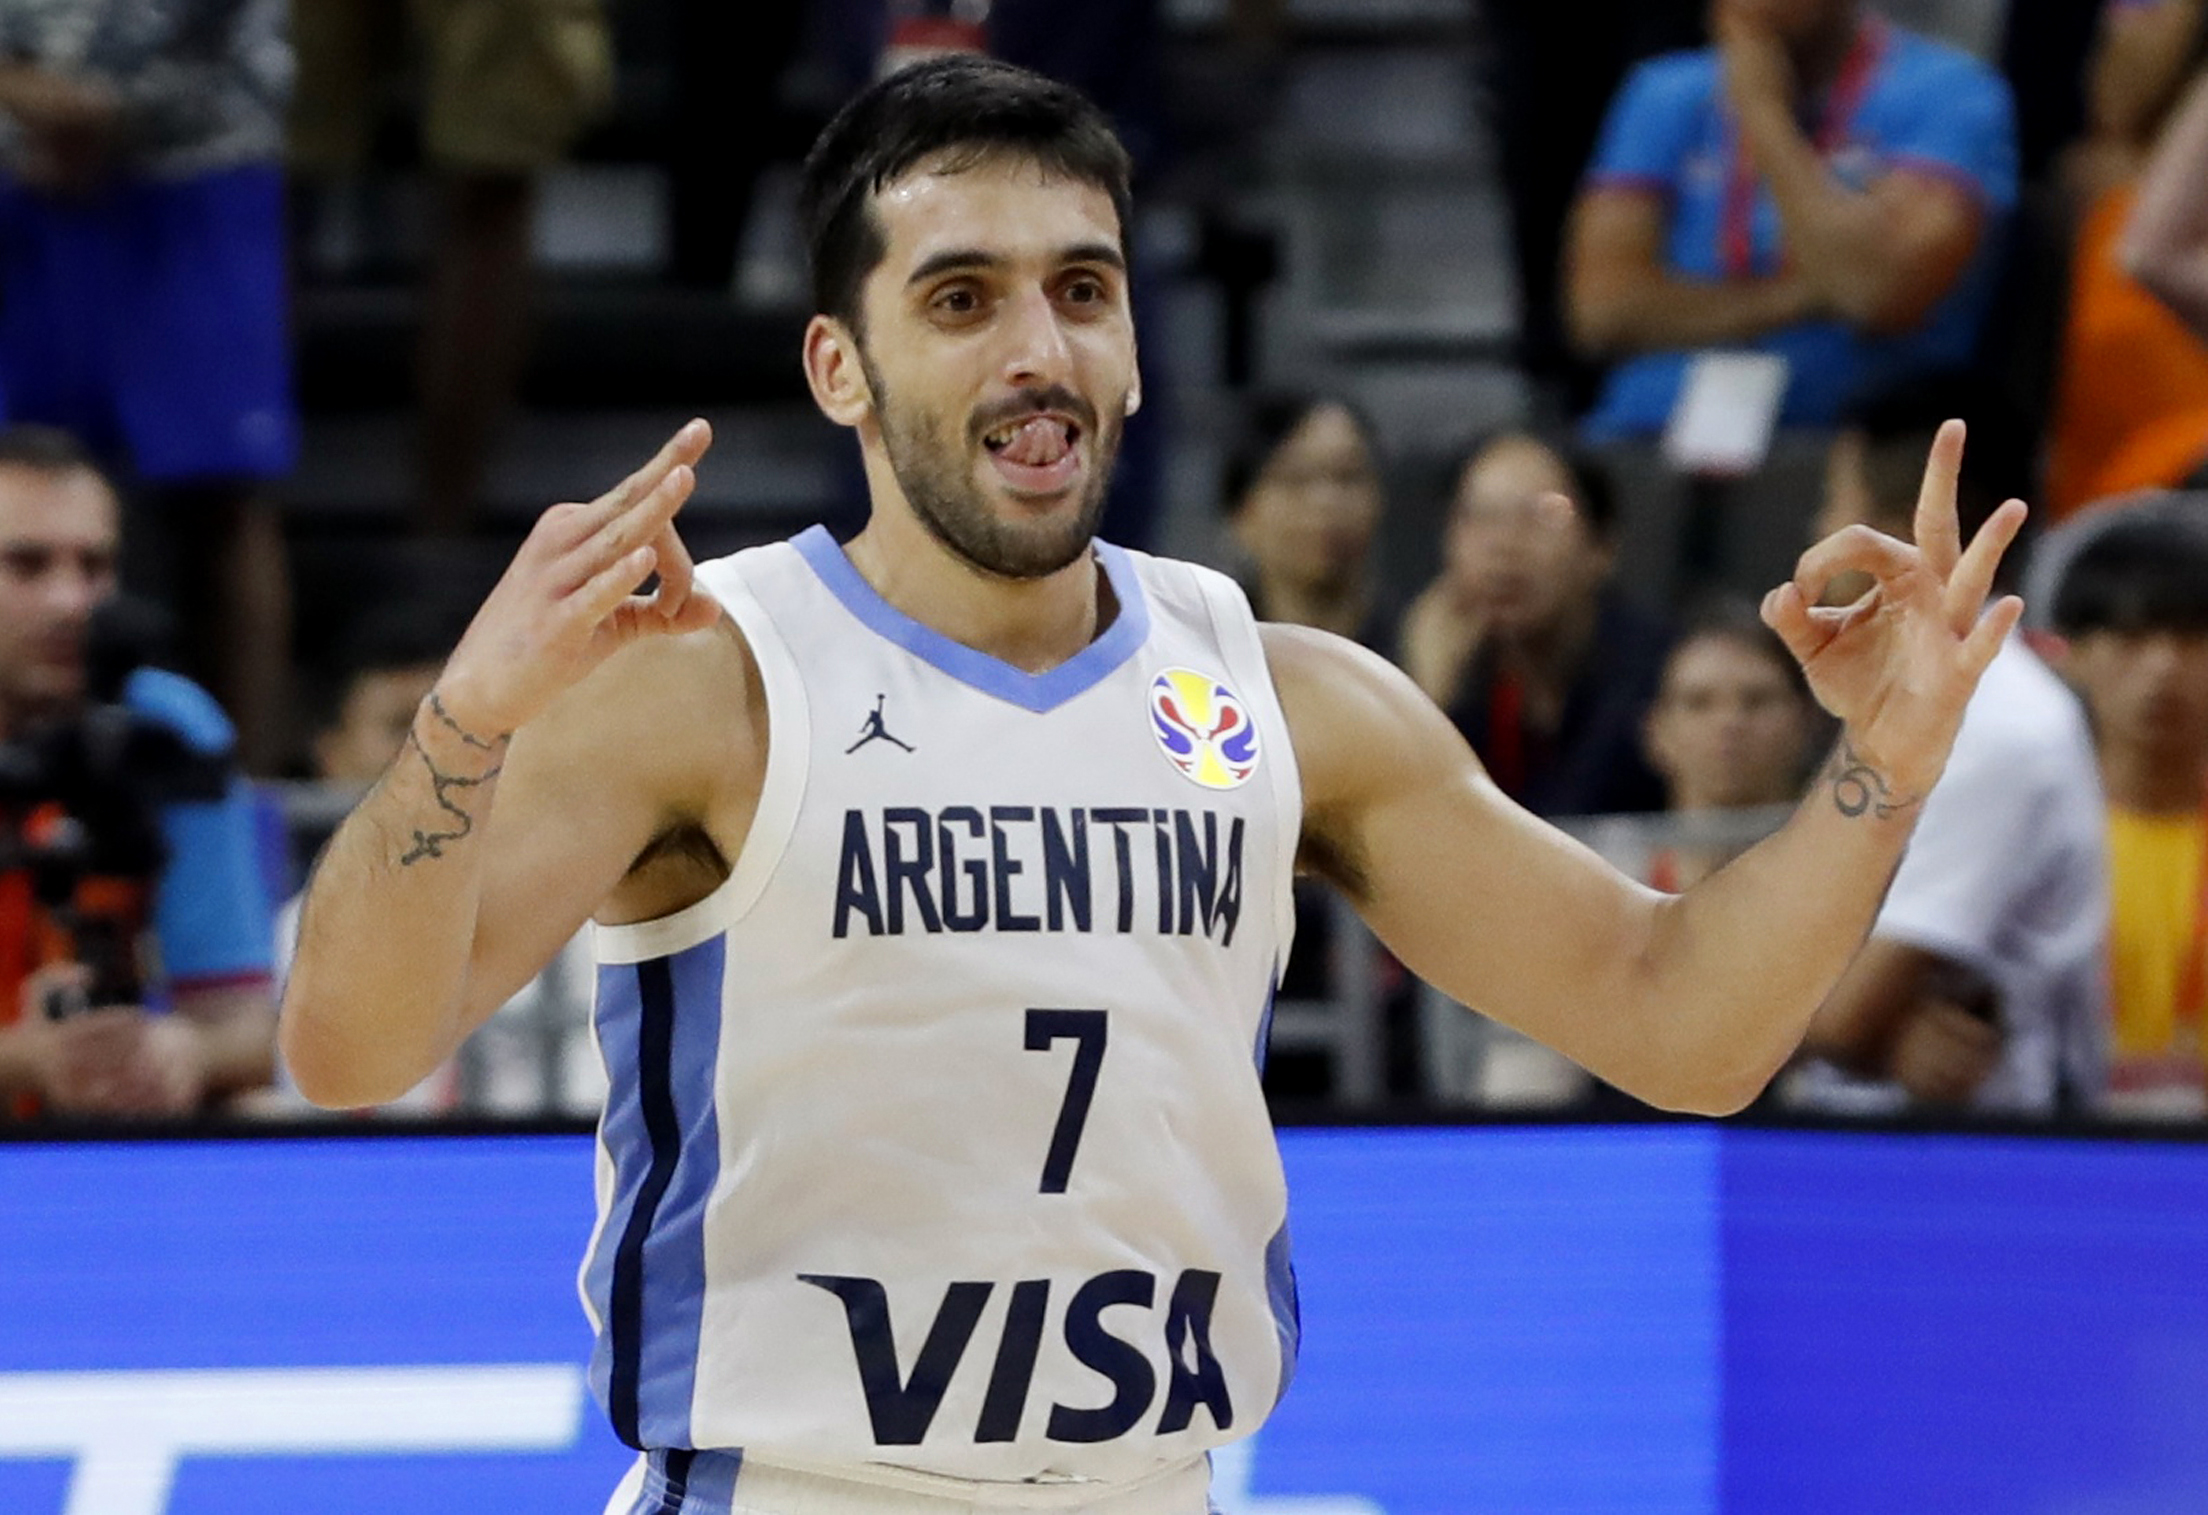 2019-09-10T125433Z_1005097128_UP1EF9A0ZUX4D_RTRMADP_3_BASKETBALL-WORLDCUP-ARG-SRB